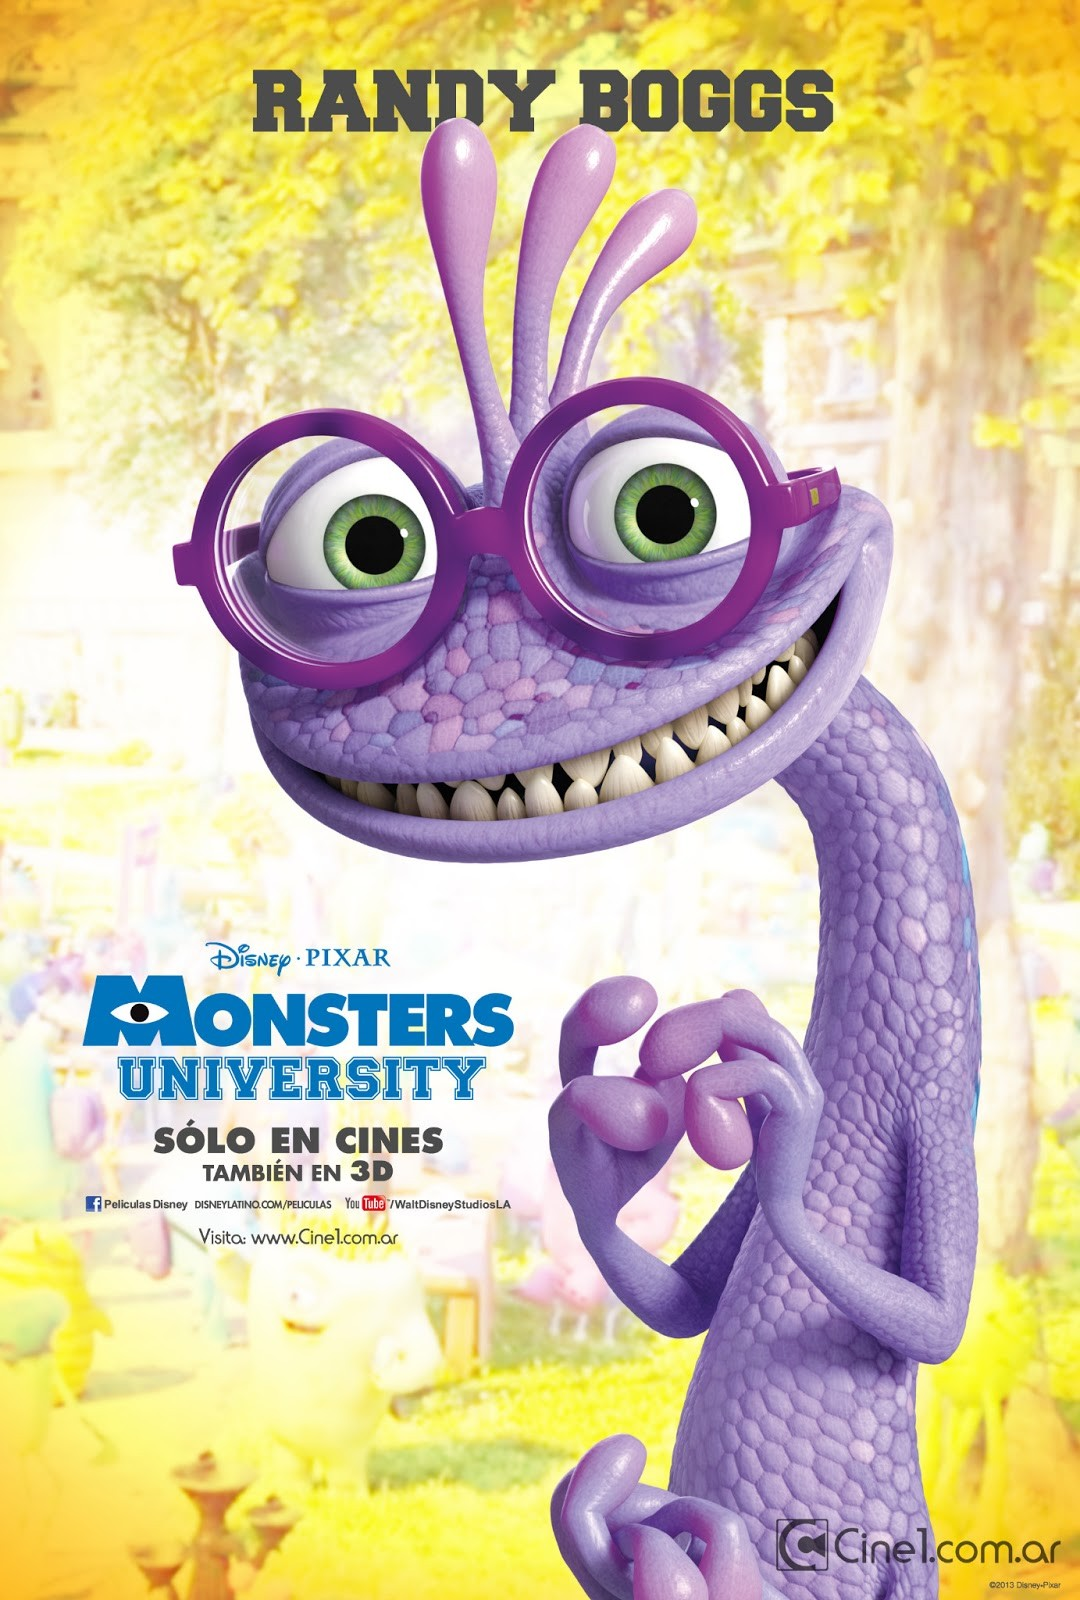 Randall boggs monsters inc wiki fandom powered by wikia monsters inc2 208490 voltagebd Choice Image